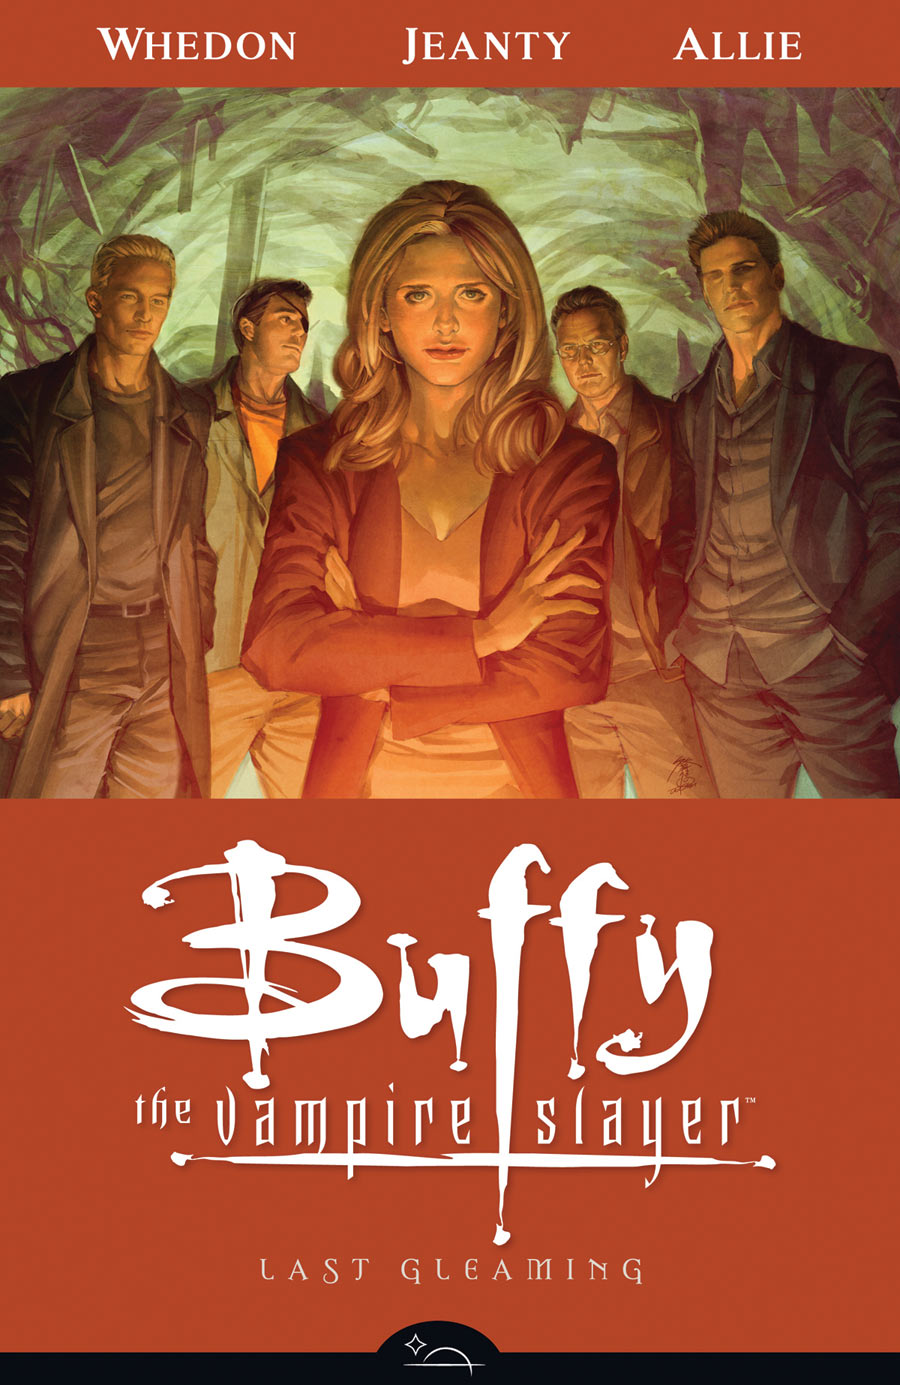 Image result for Buffy the Vampire Slayer Season Eight buffy graphic novels